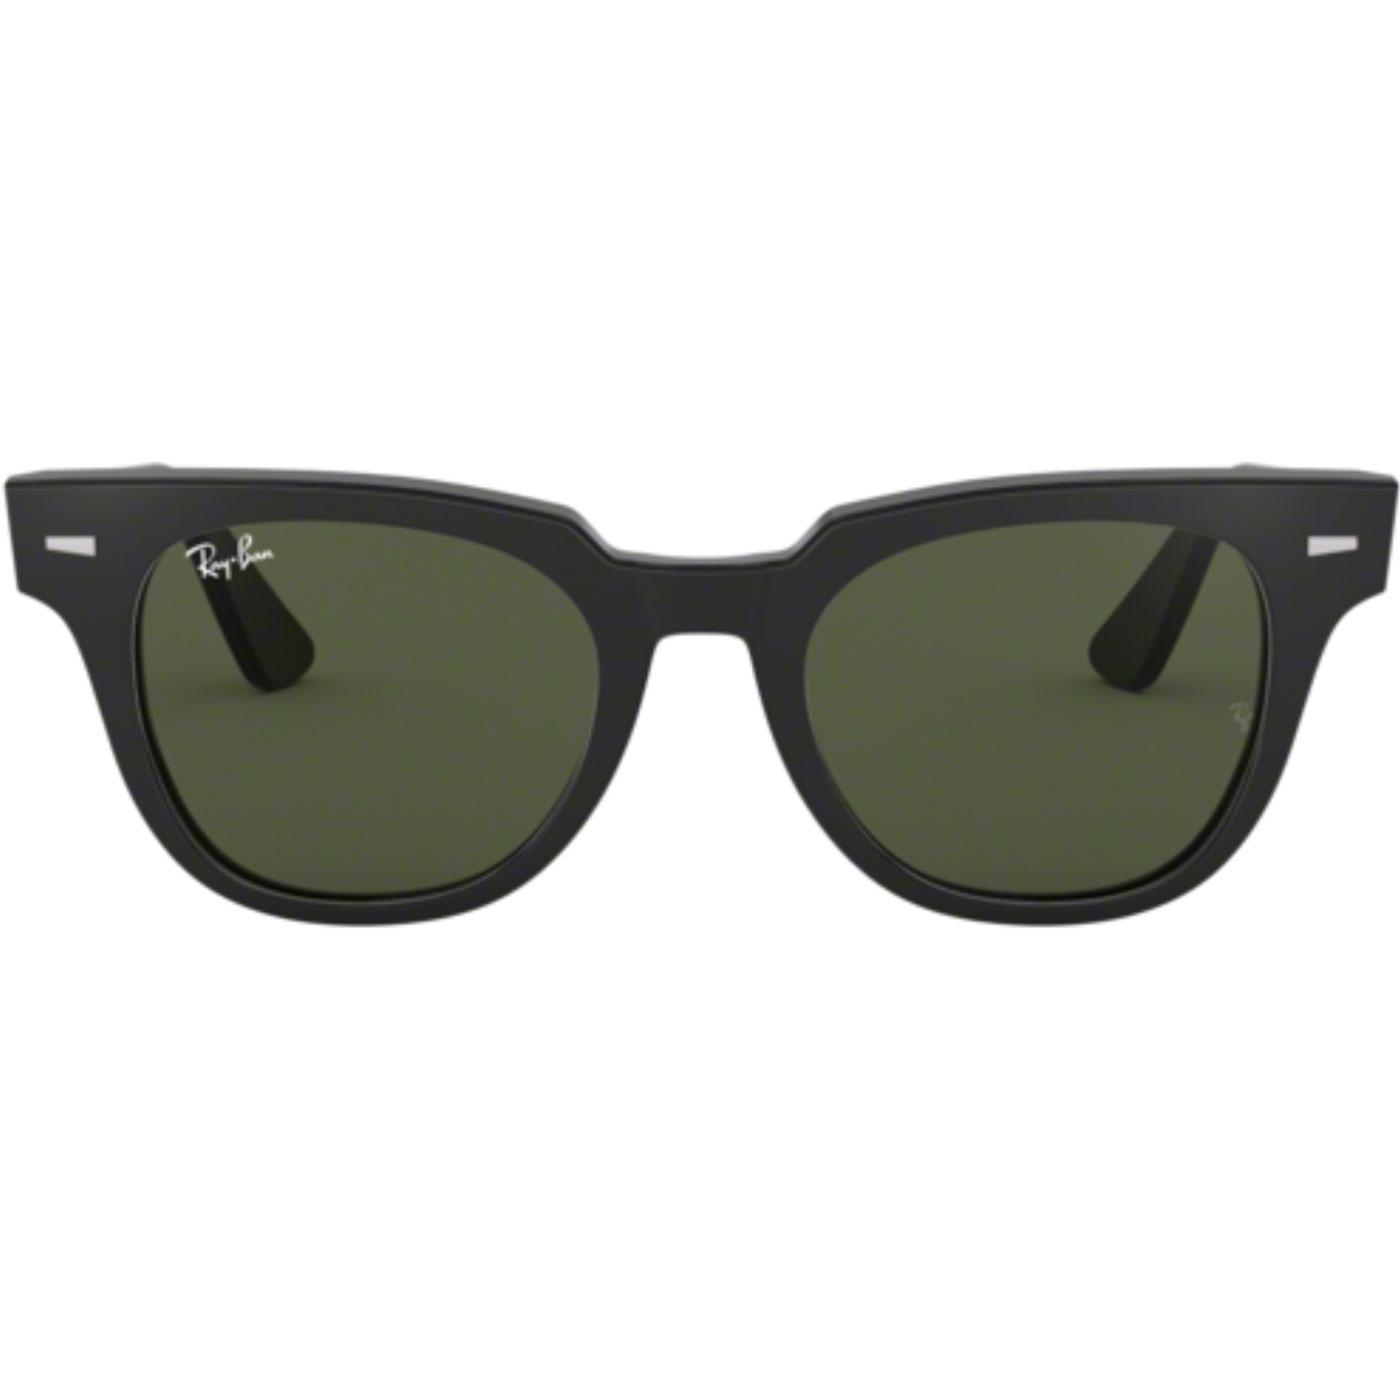 Meteor RAY-BAN Retro Wayfarer Sunglasses in Black